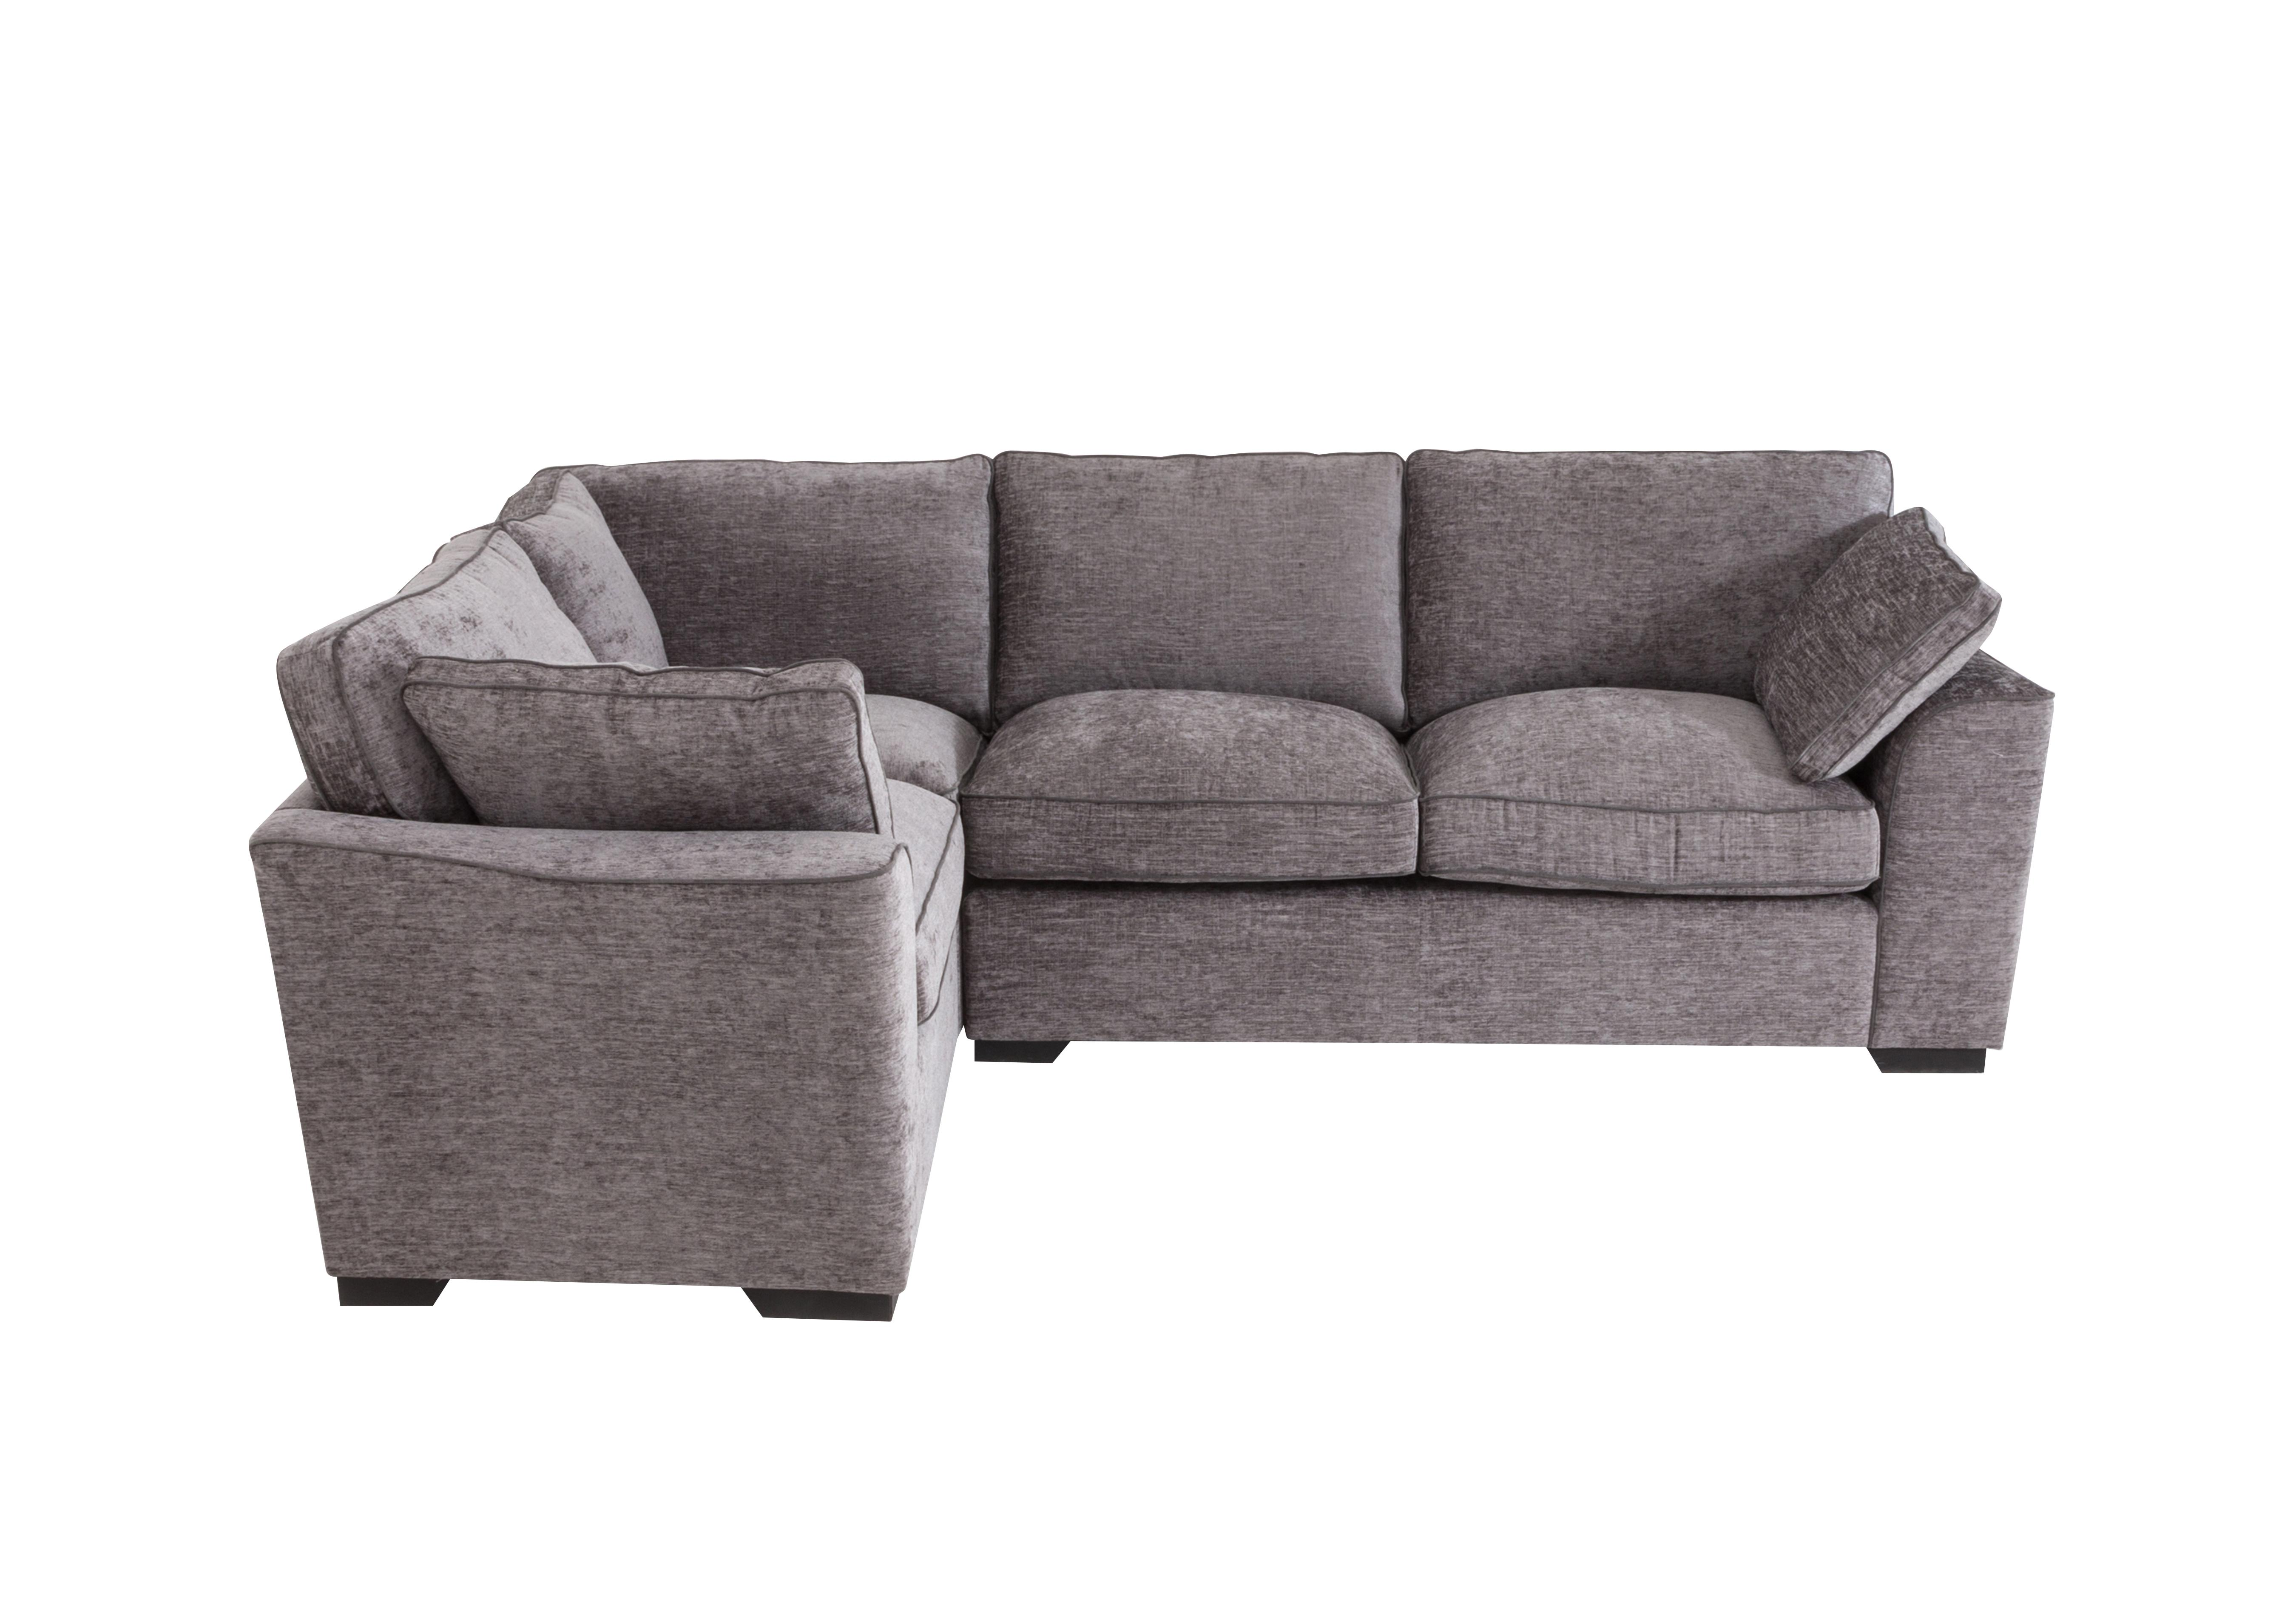 Alexandra Small Corner Sofa in Manon Silver(Graphite Pipe) Dk on Furniture Village  sc 1 st  Furniture Village & Alexandra Small Corner Sofa - Furniture Village